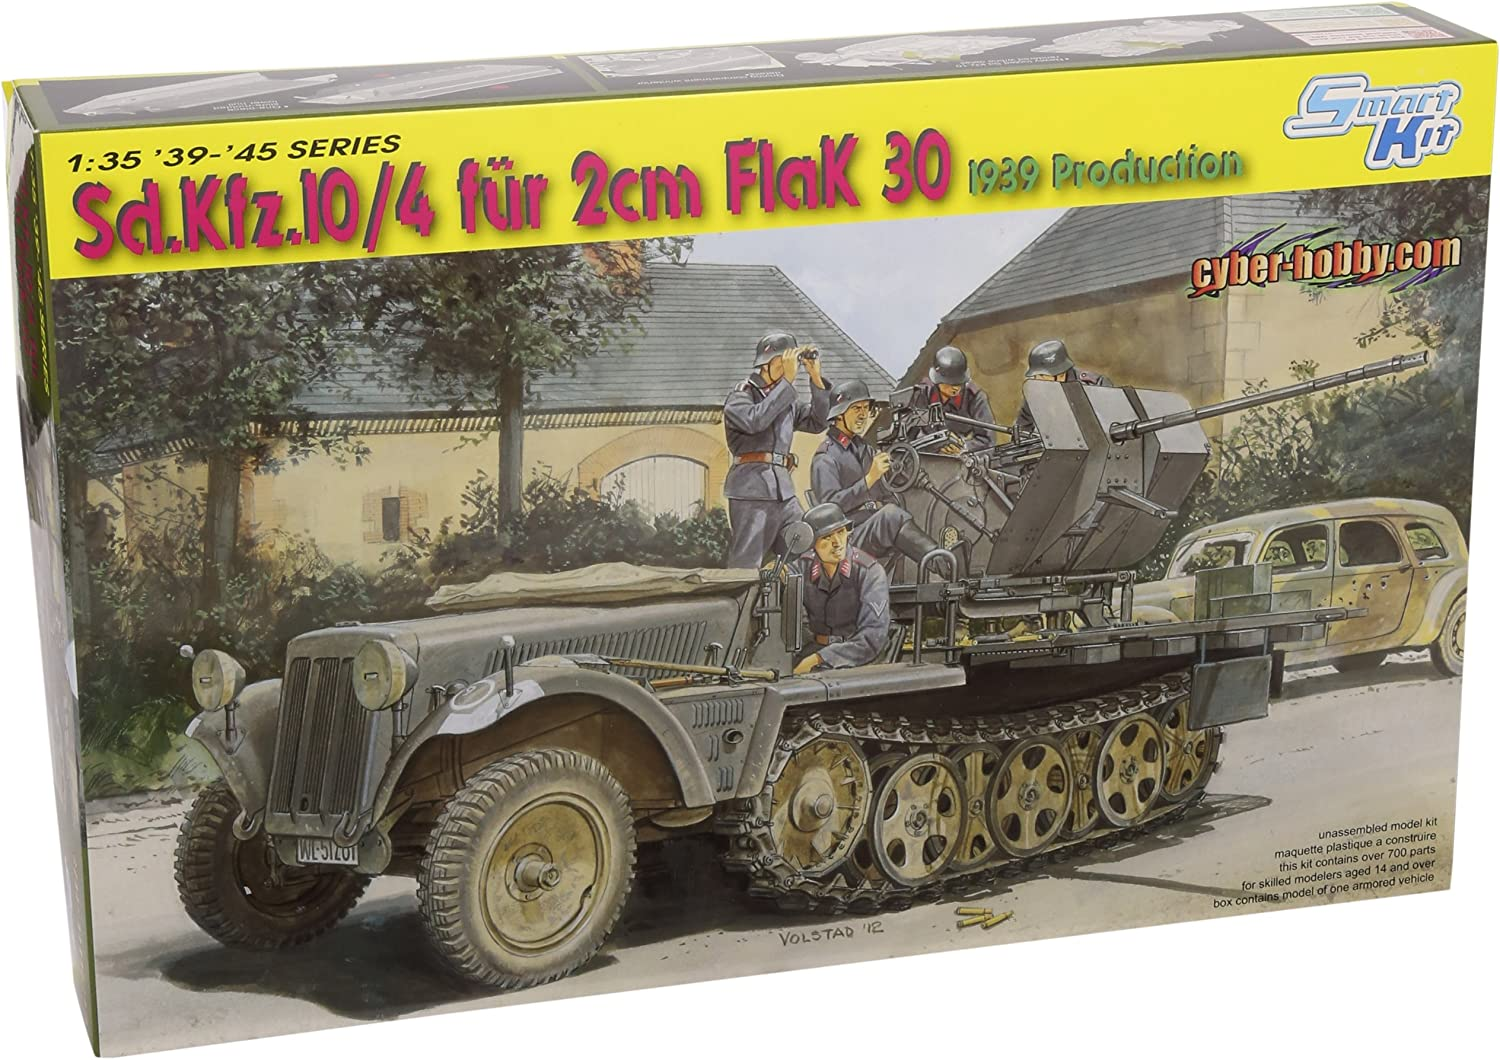 Dragon 1 35 Sd.kfz 10 4 Fur 2cm Flak 30